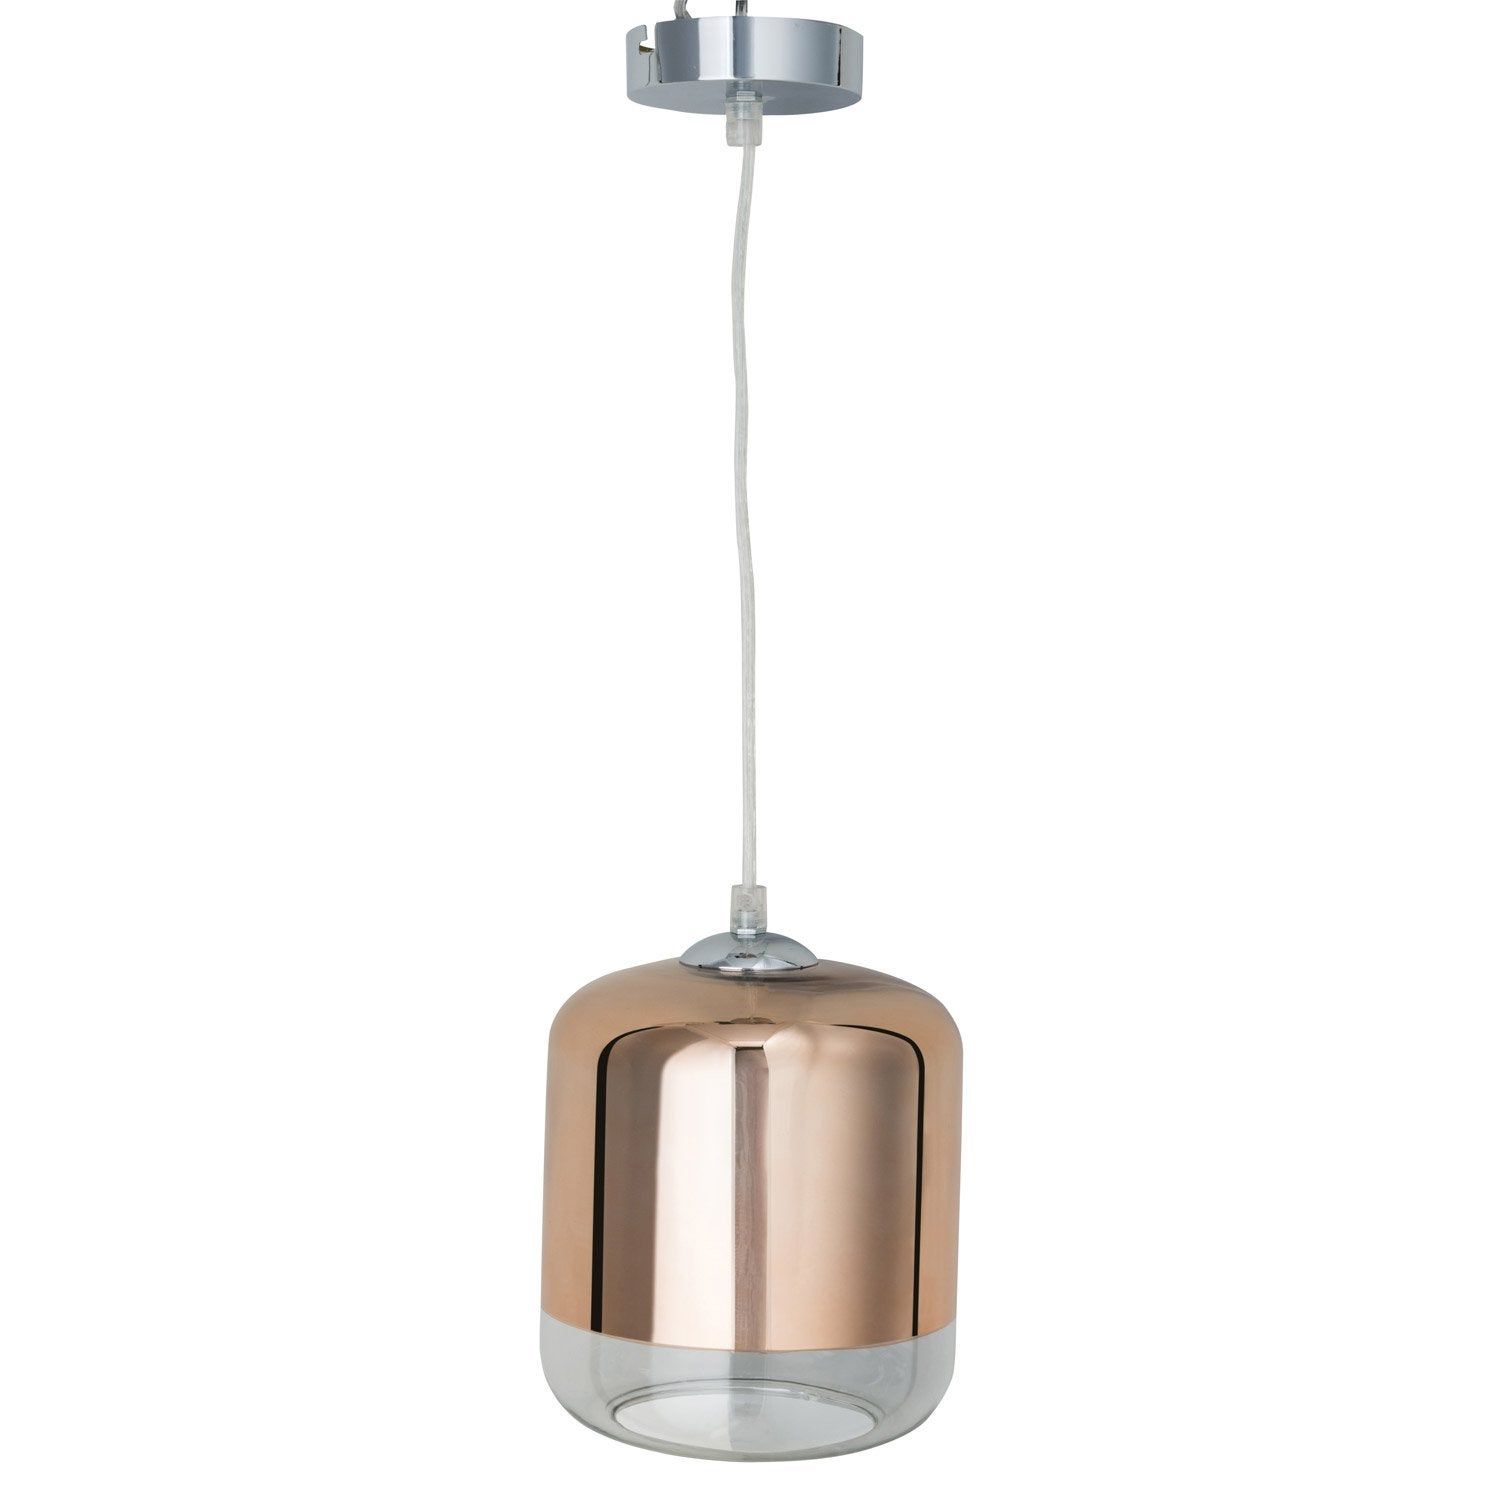 Suspension design myrta verre cuivre 1 x 60 w inspire leroy merlin - Suspensions leroy merlin ...